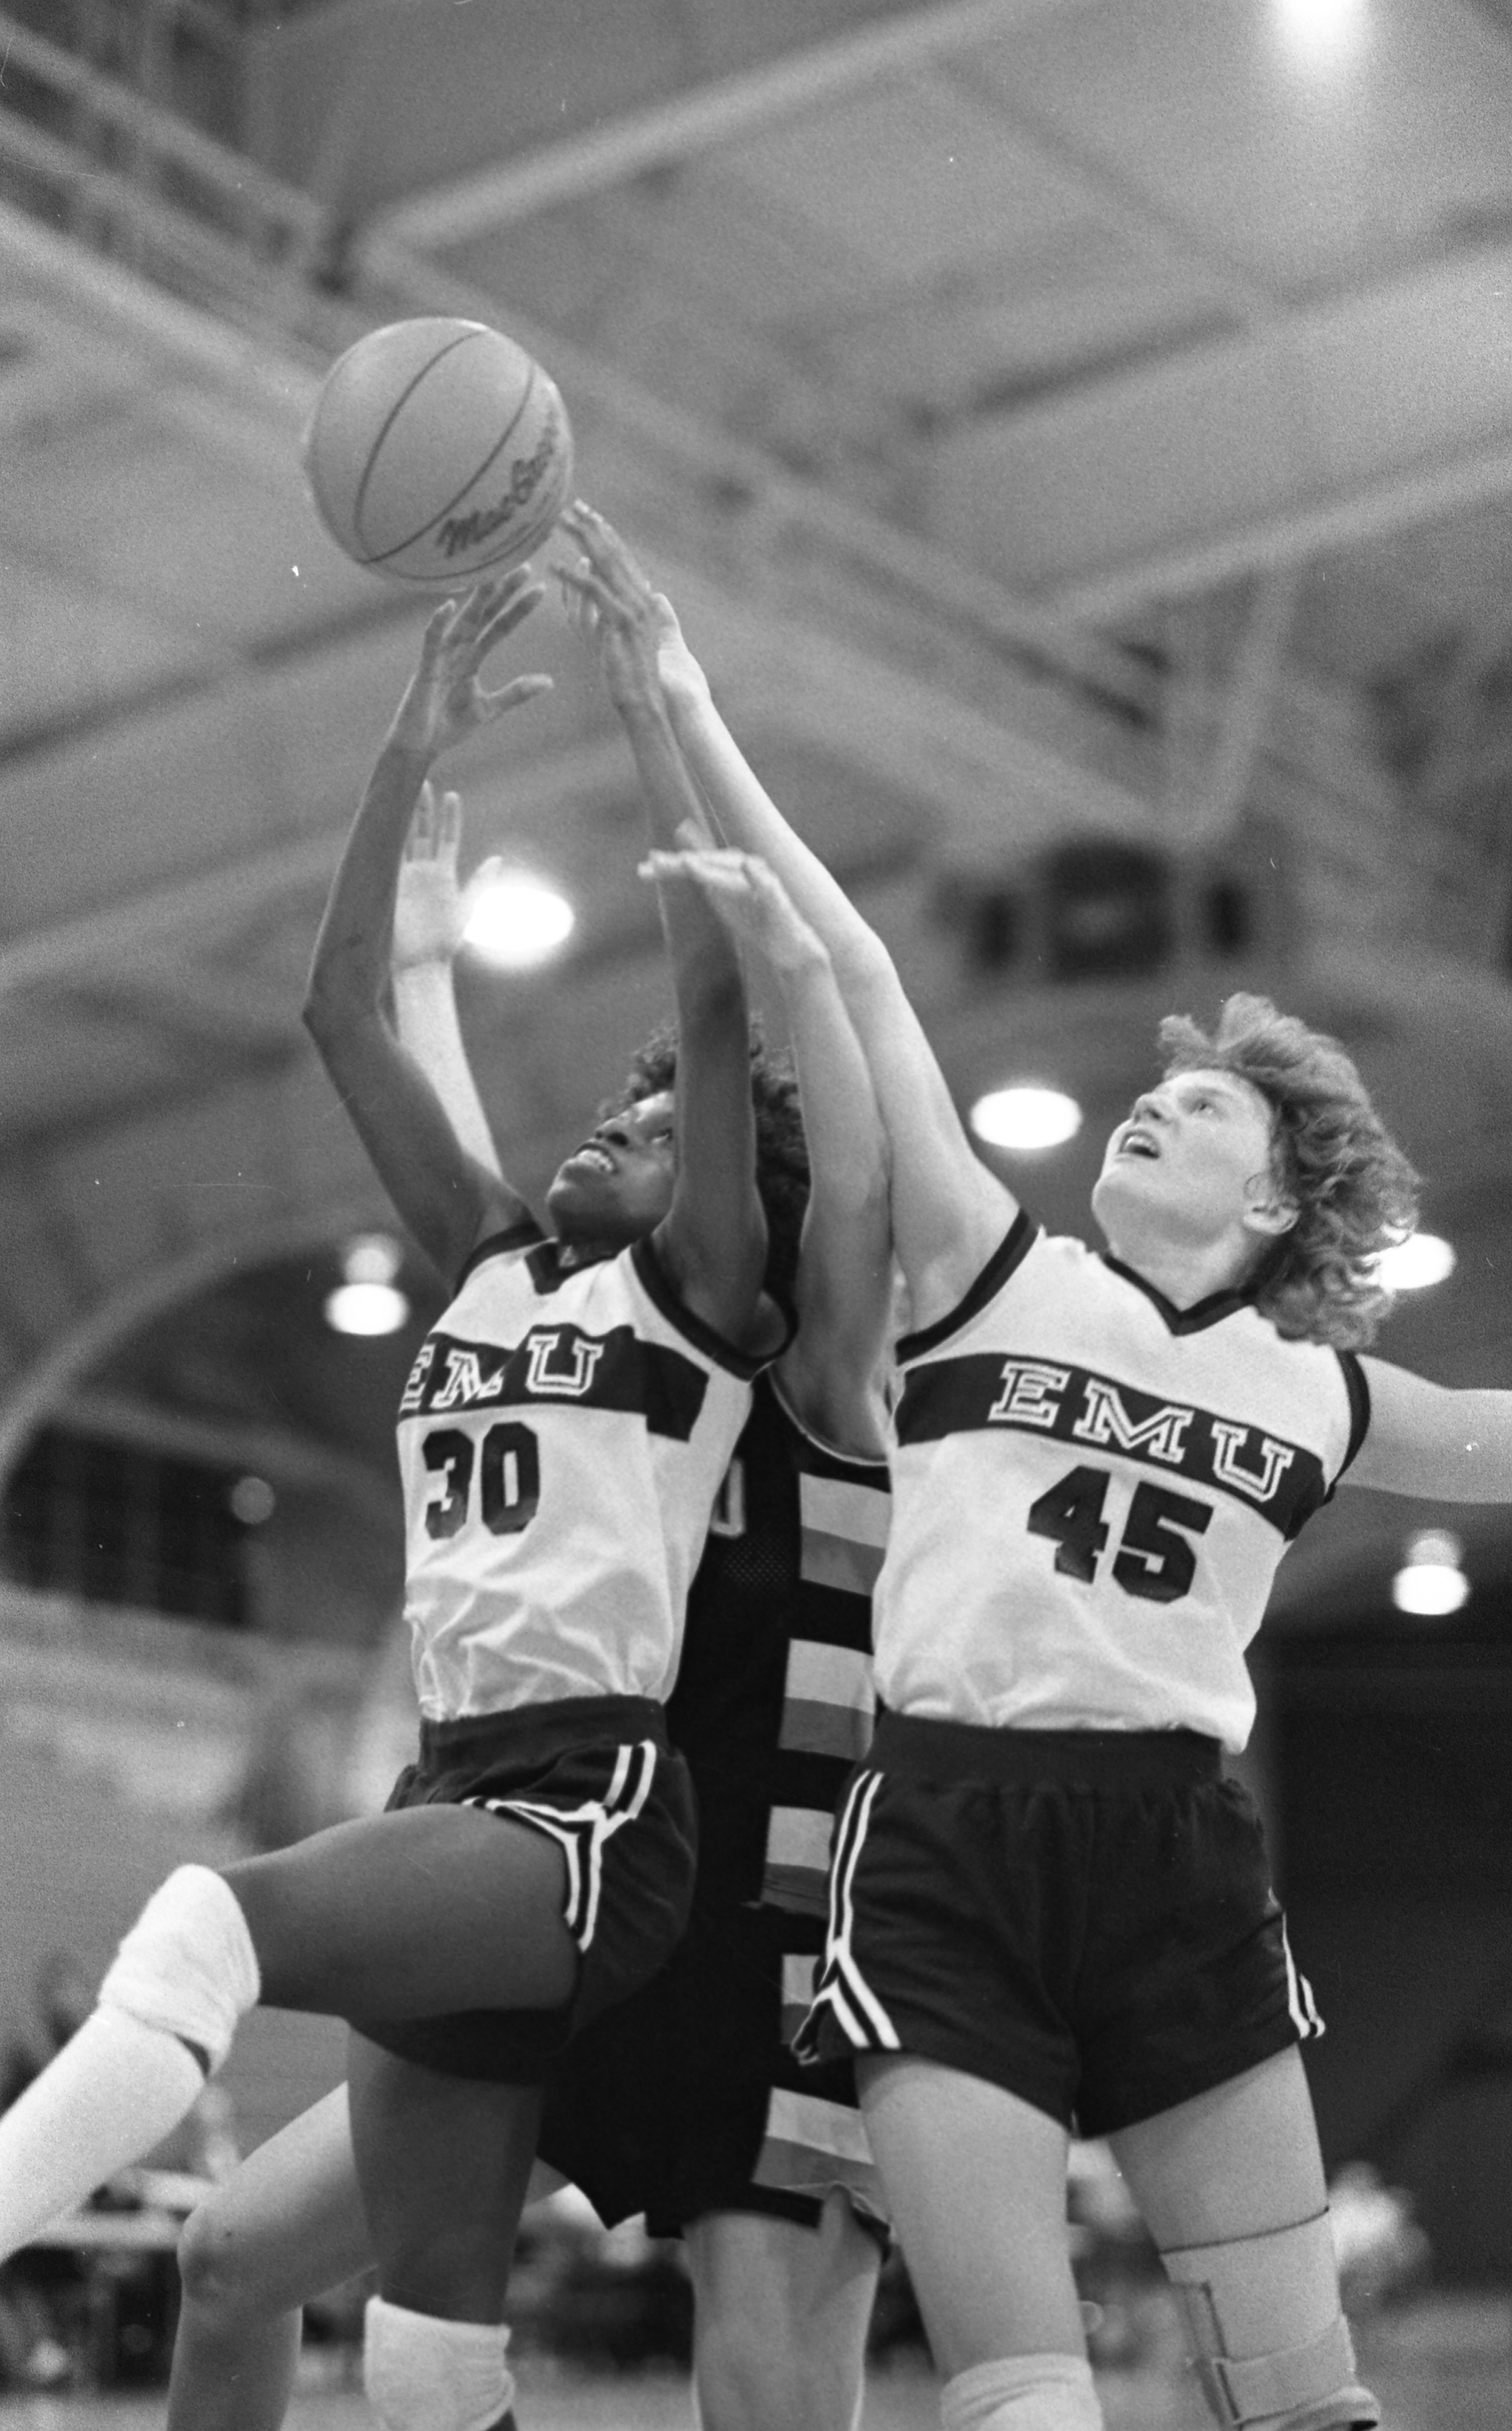 EMU Women's Basketball vs. University of Toledo, January 1986 image